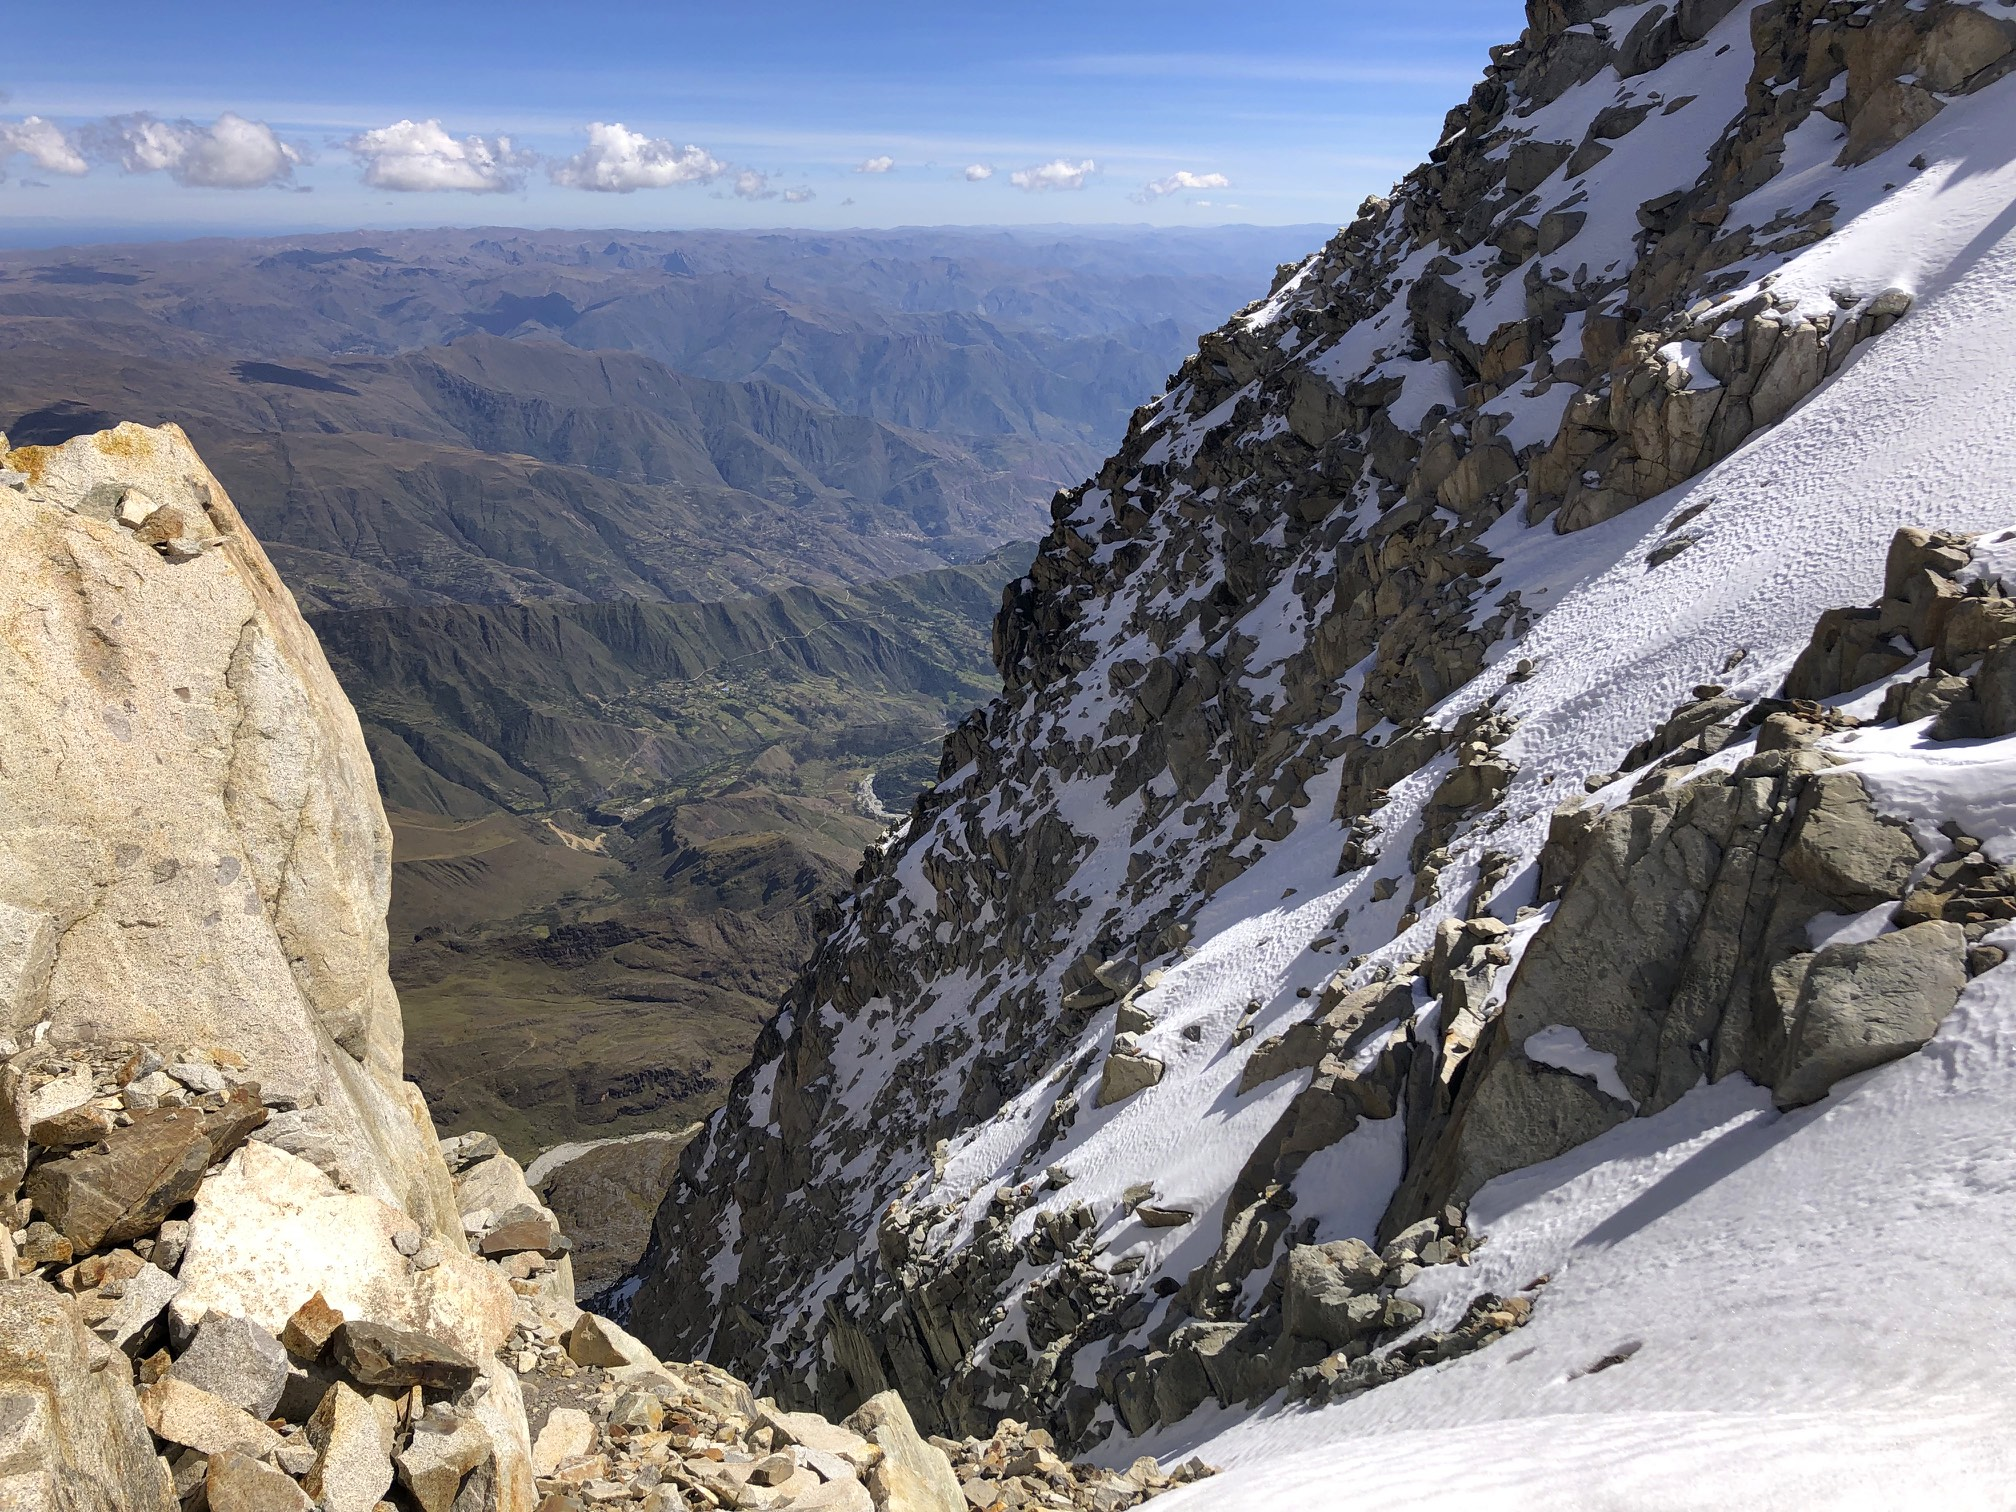 Looking down to the Altiplano from 5,350m near the high camp.